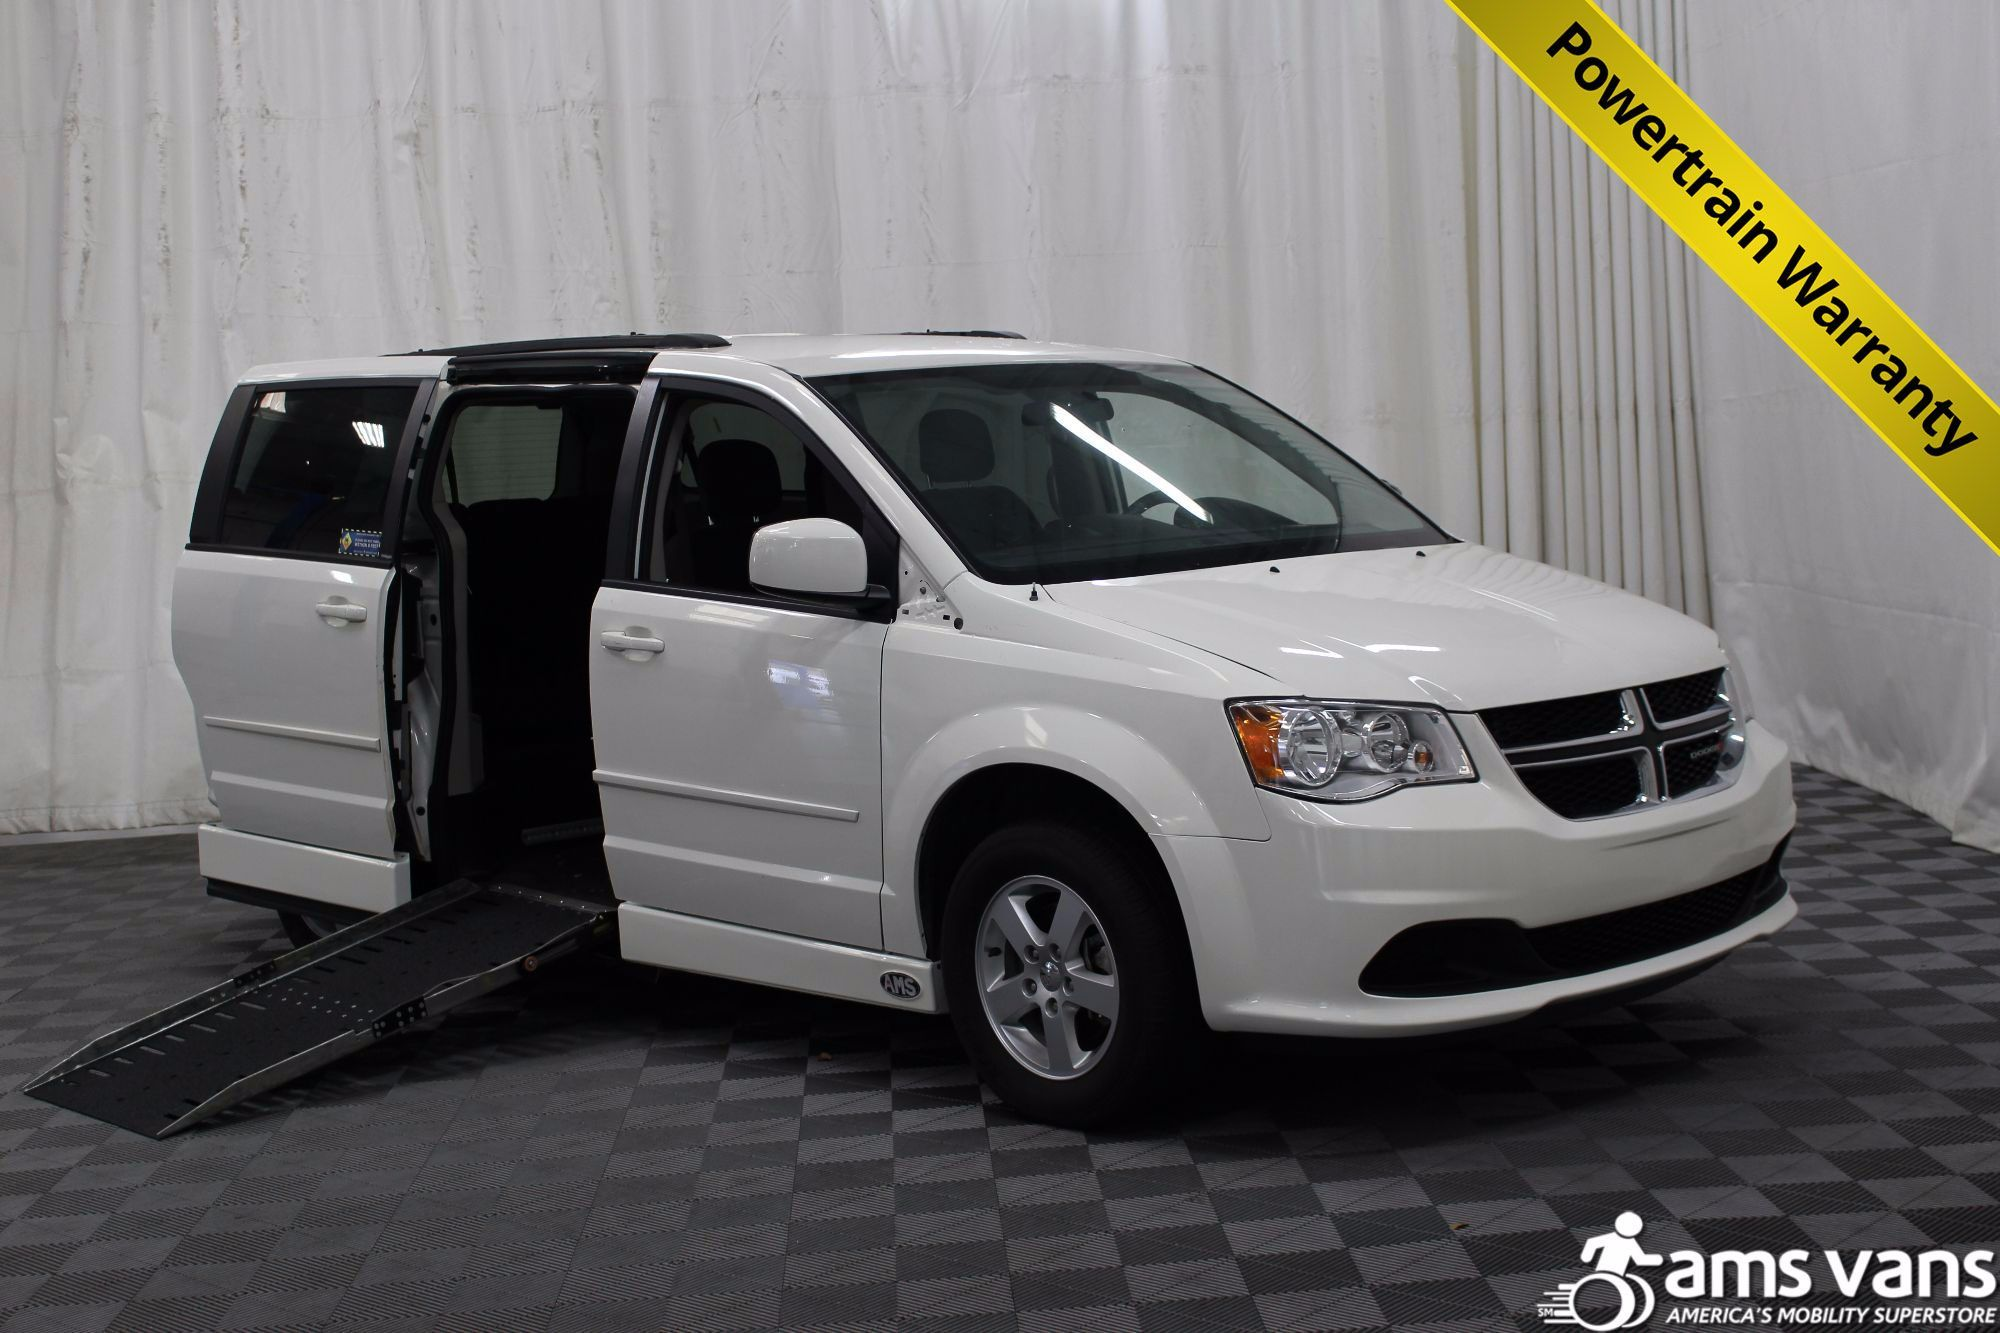 Used 2012 Dodge Grand Caravan Sxt Grand Caravan Caravan Van